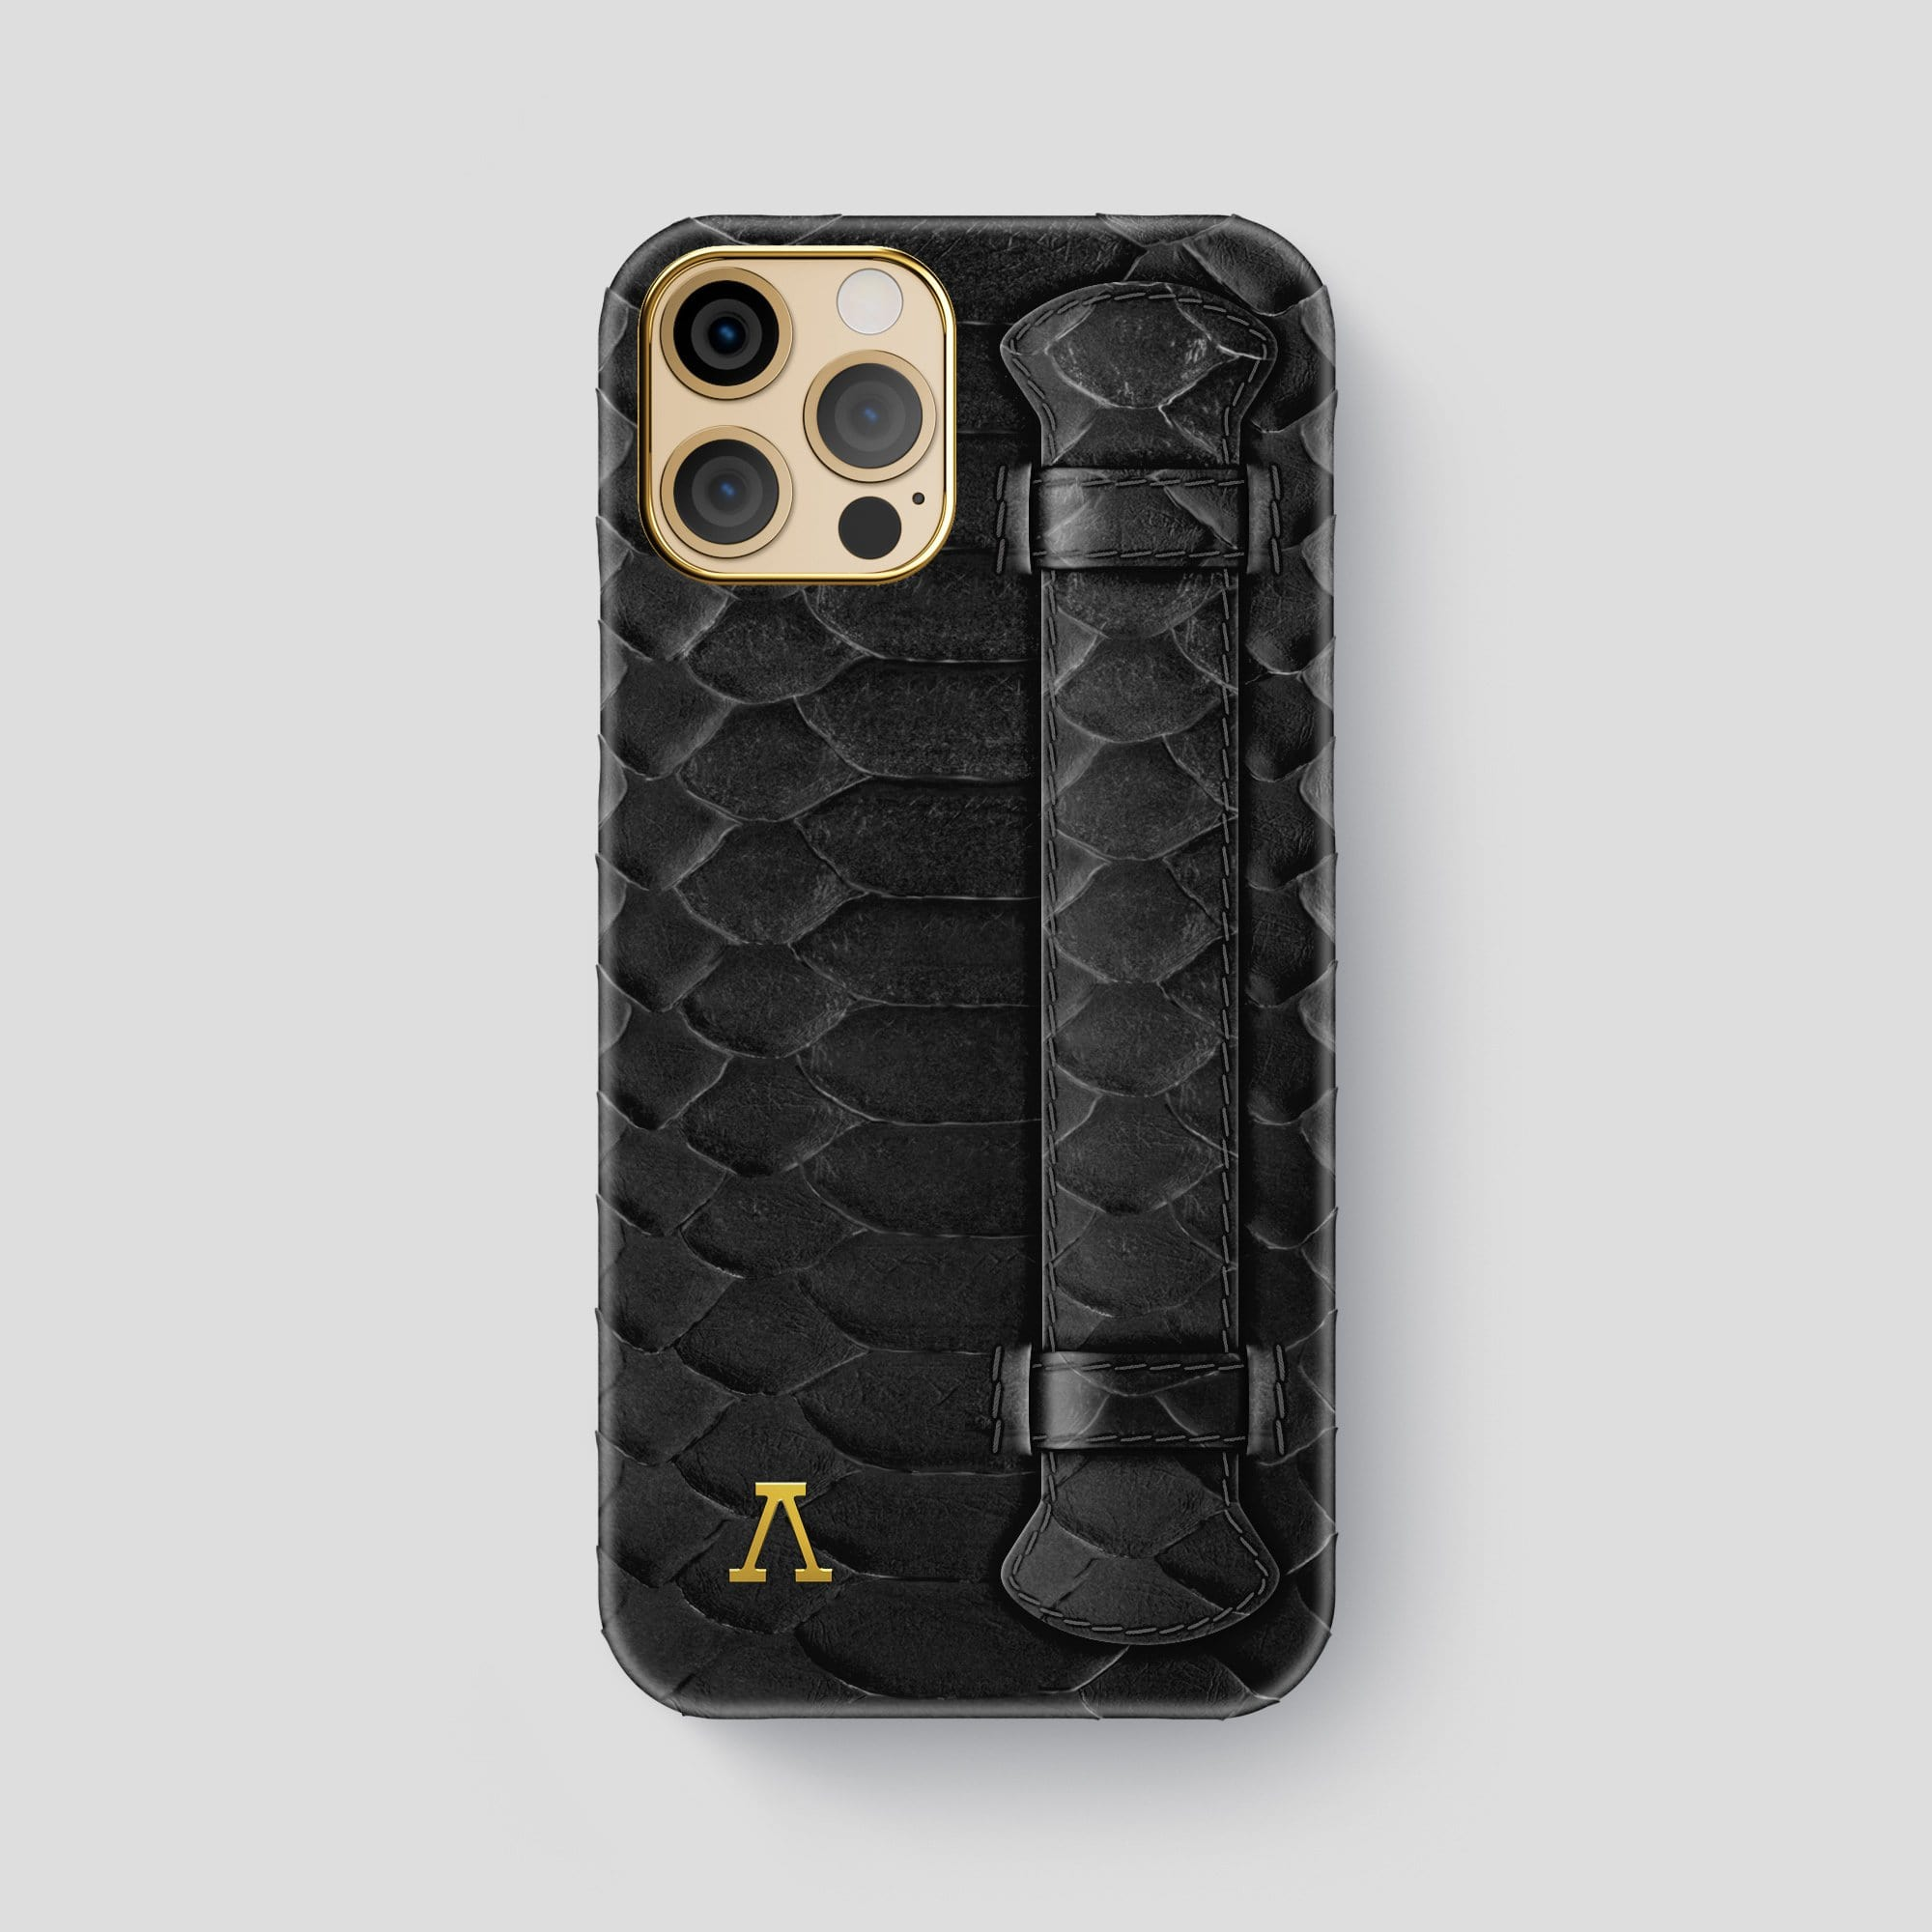 iPhone 12 Pro Max Strap Case Python